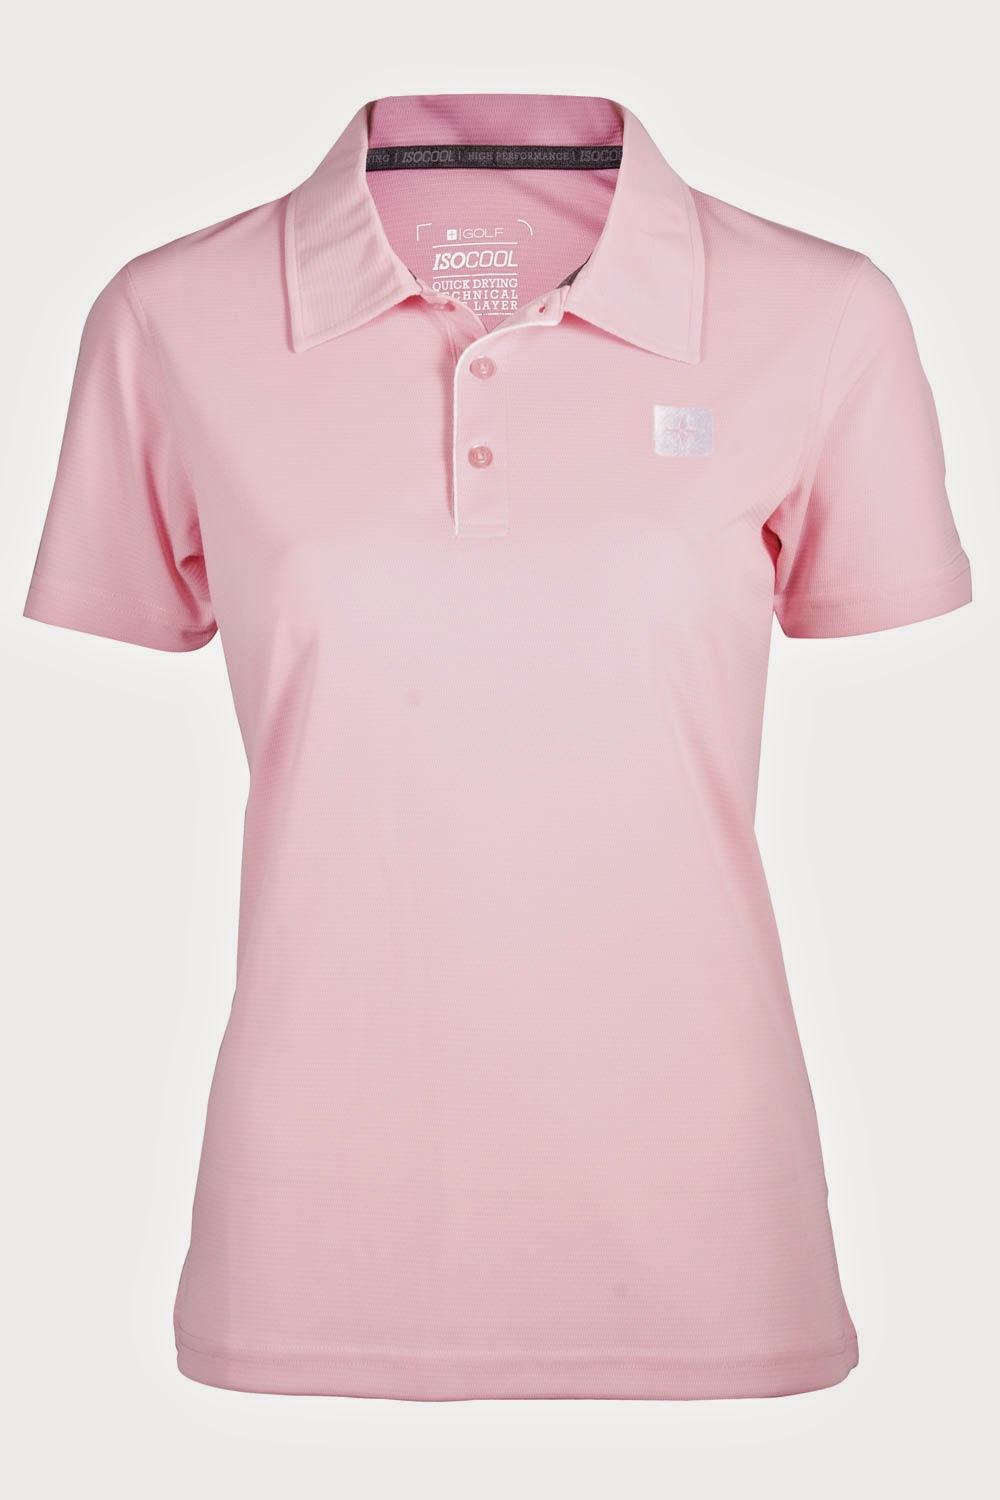 Images For Polo Shirts For Women For Work Fashion 39 S Feel